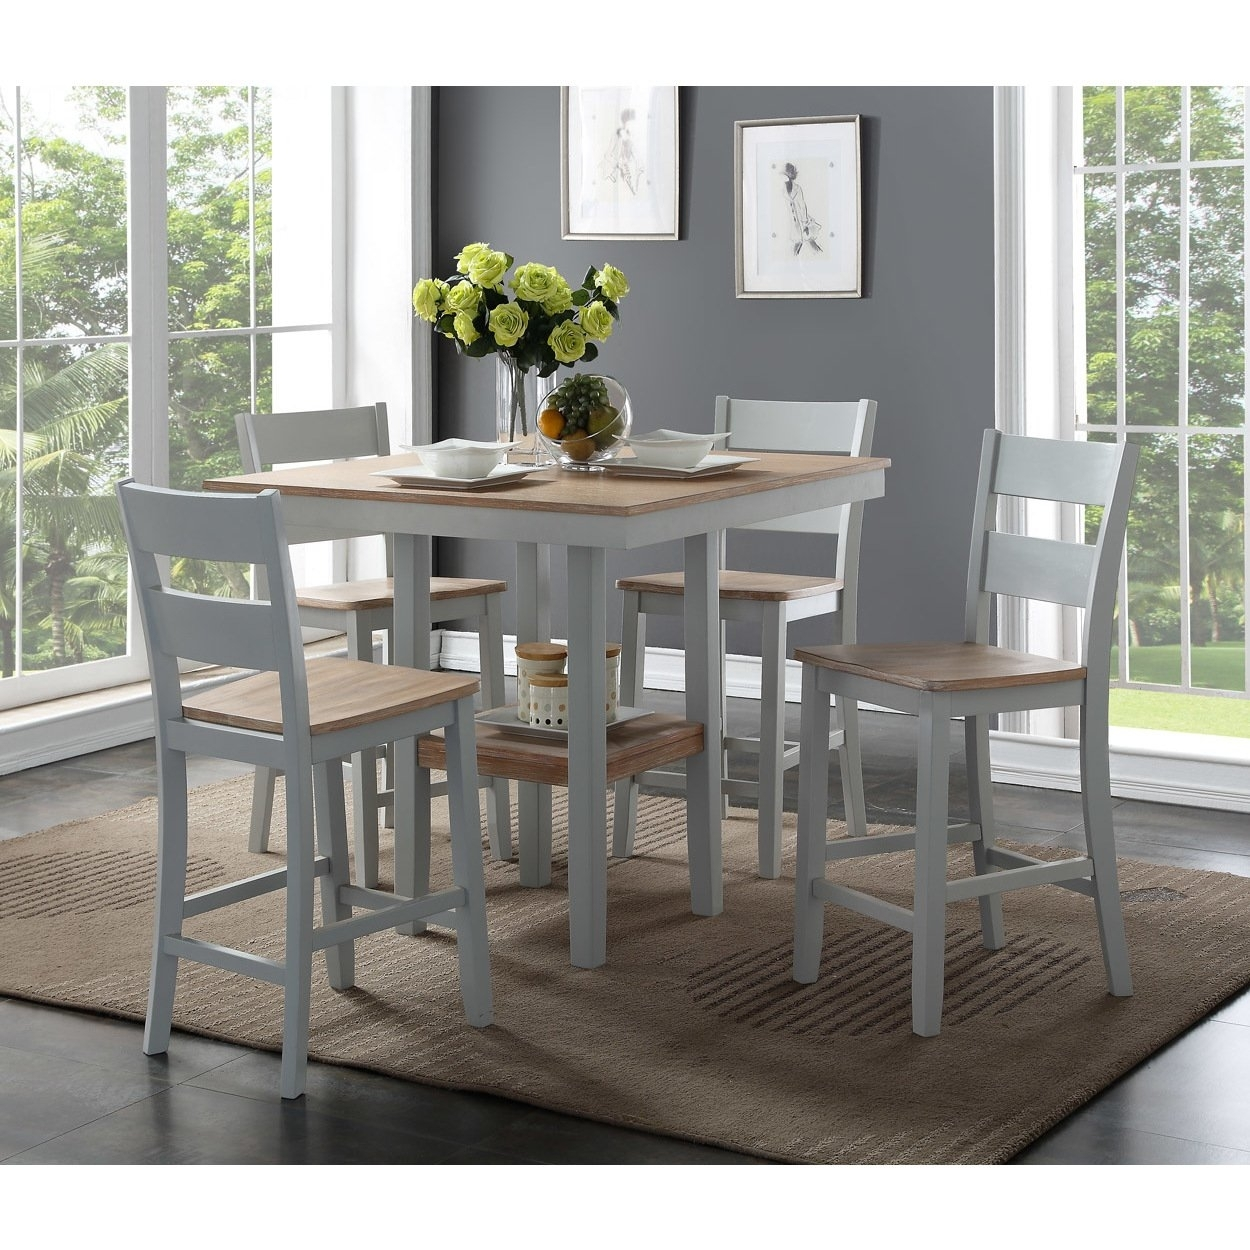 Shop Bernards York Counter 5 Piece Dining Set – Free Shipping Today Regarding Most Recently Released Harper 5 Piece Counter Sets (View 10 of 20)